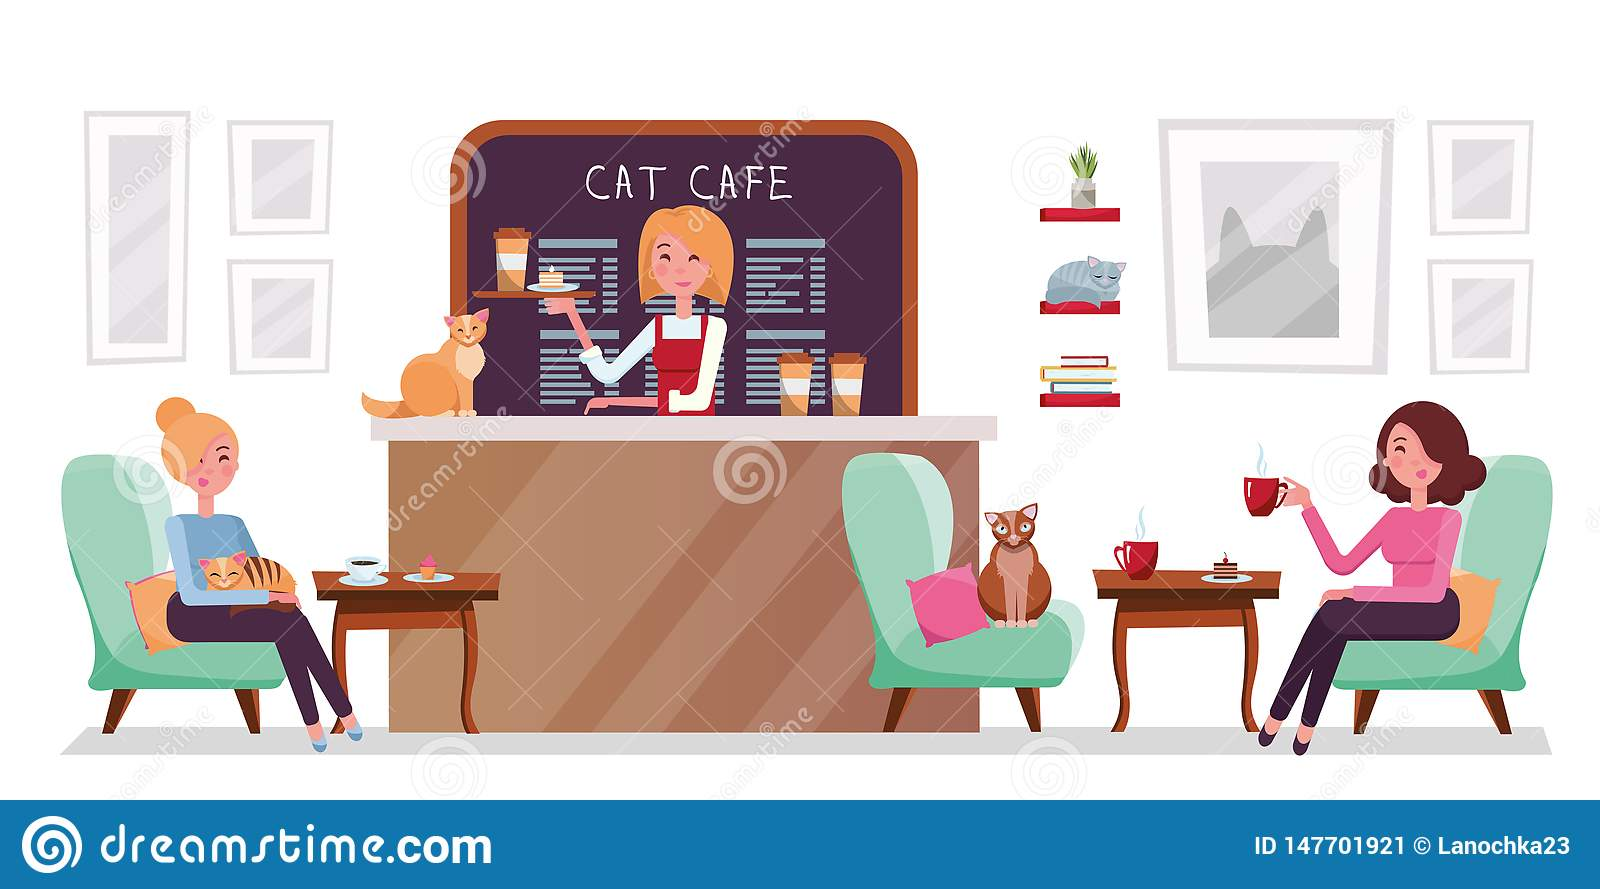 Cat cafe shop, people relaxing with kitties. Place interior to meet, drink and eat, chat, have a rest with pets, barista girl with